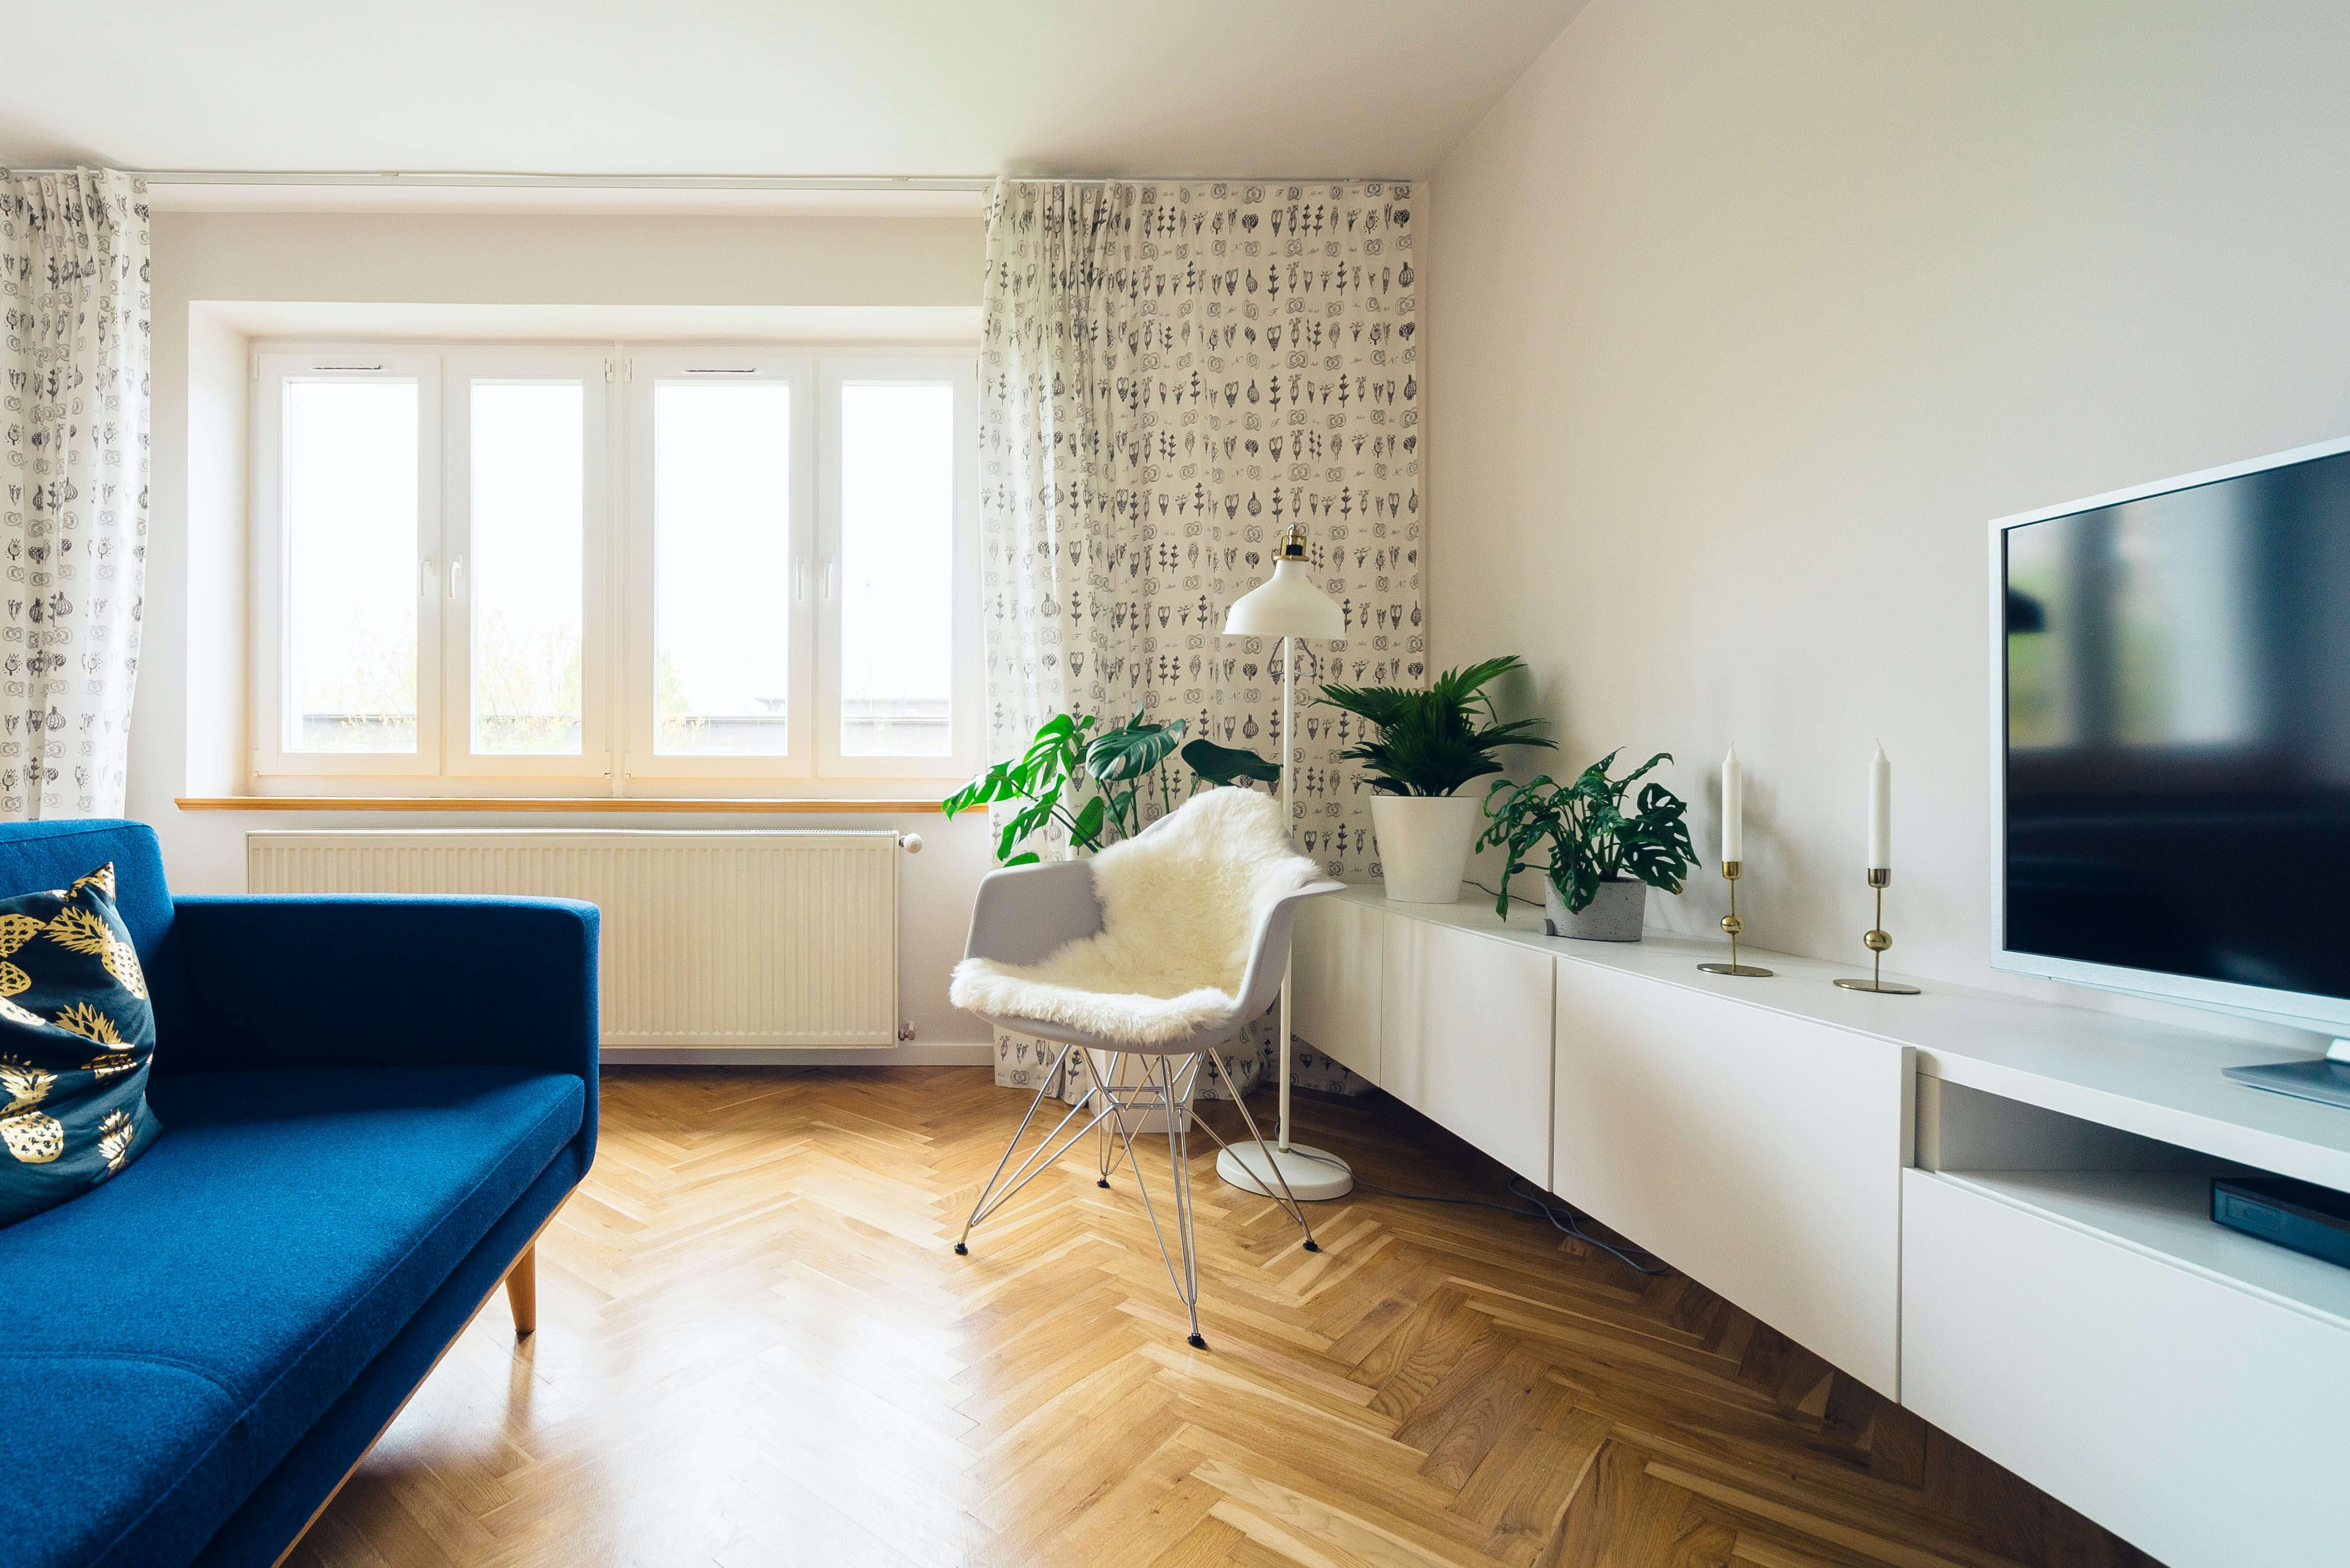 15 tips to help with apartment renting